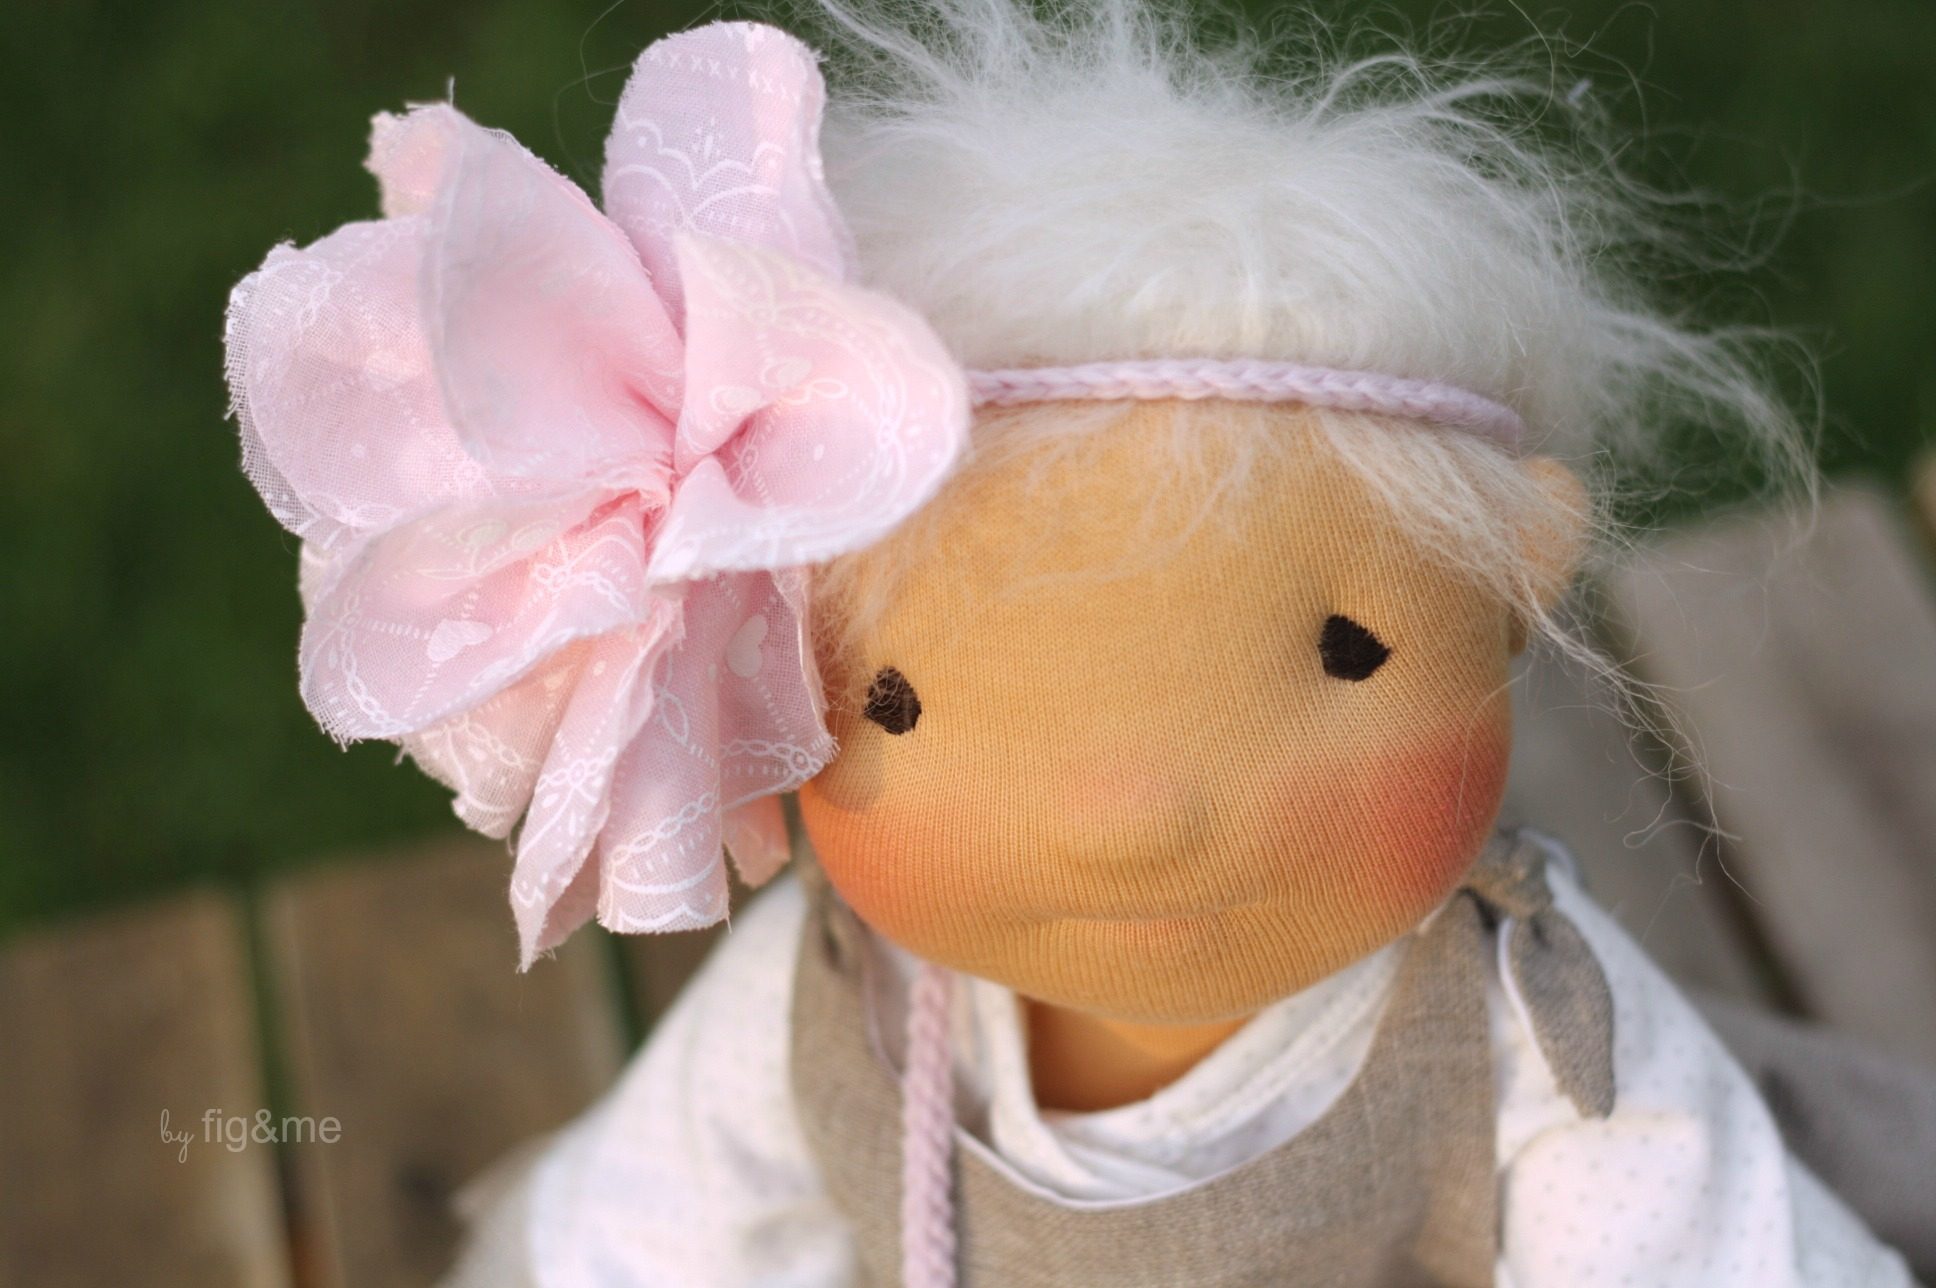 Miss Mimi, by Fig&me